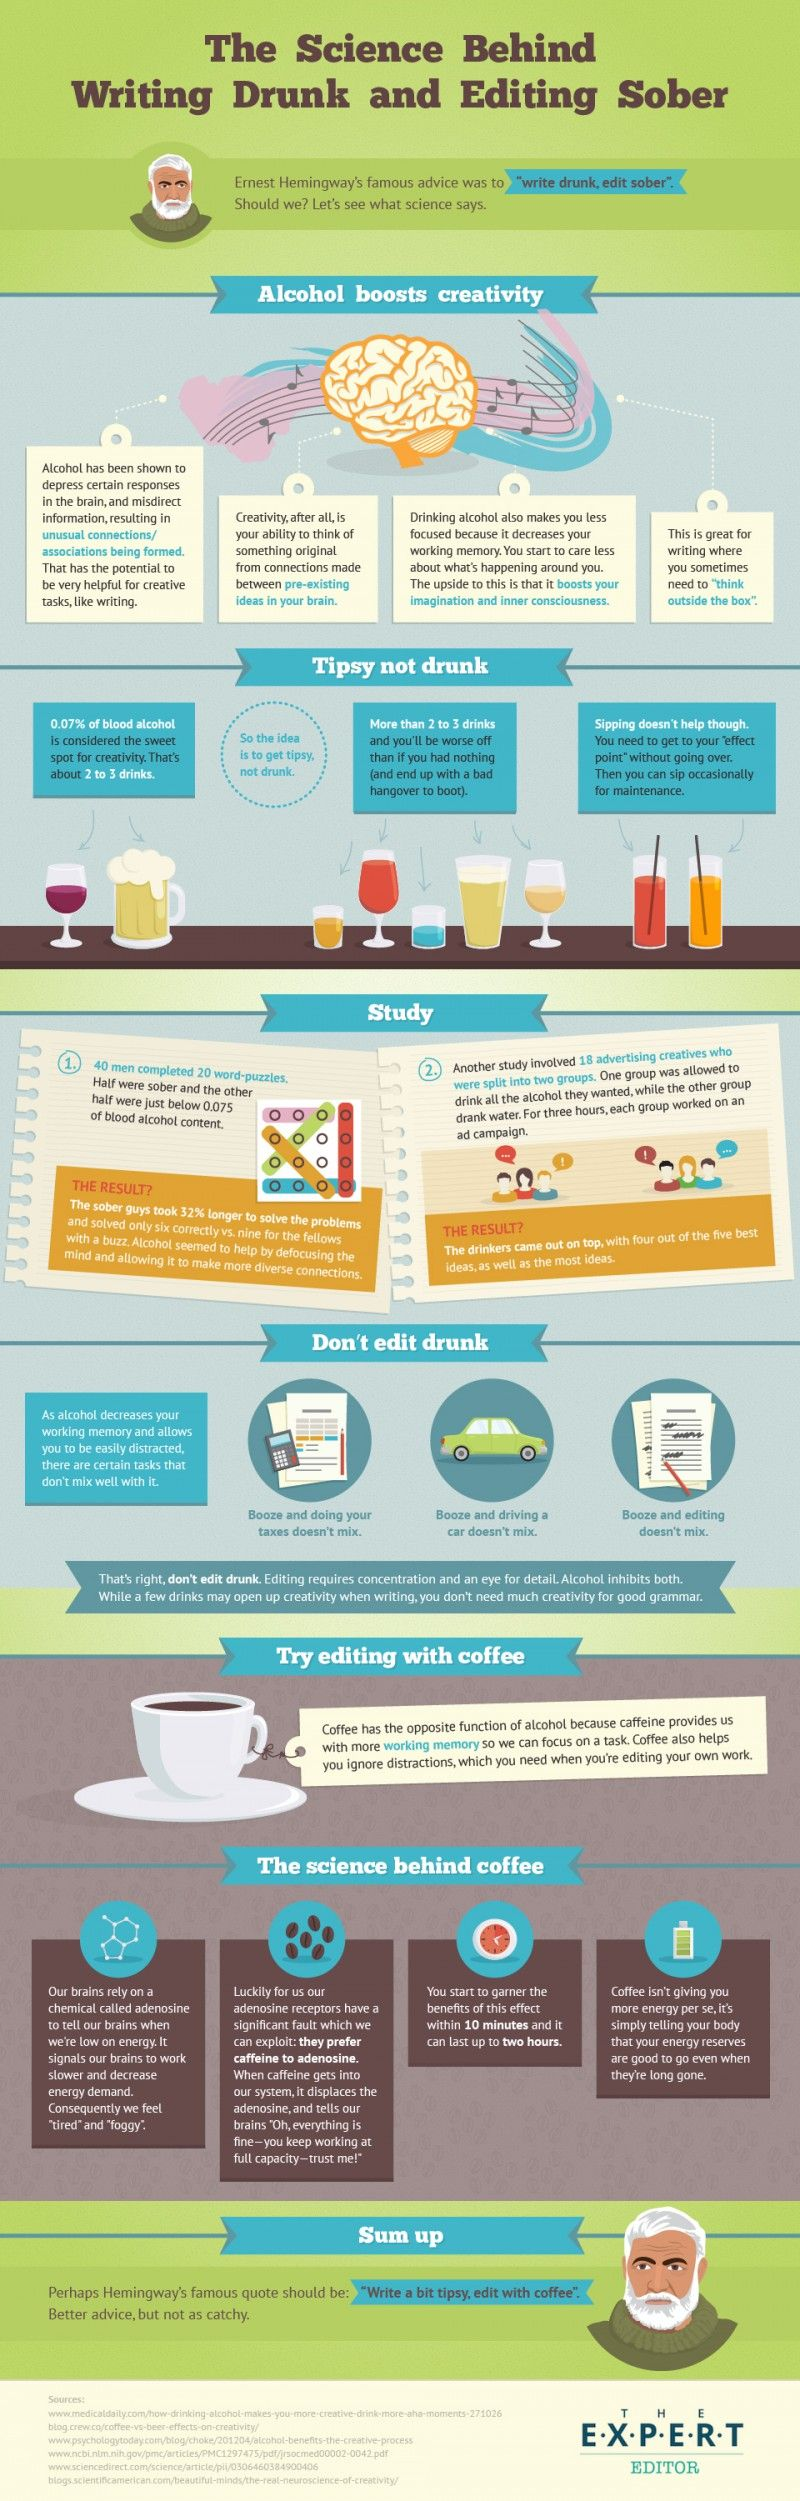 The Science Behind Writing Drunk and Editing Sober